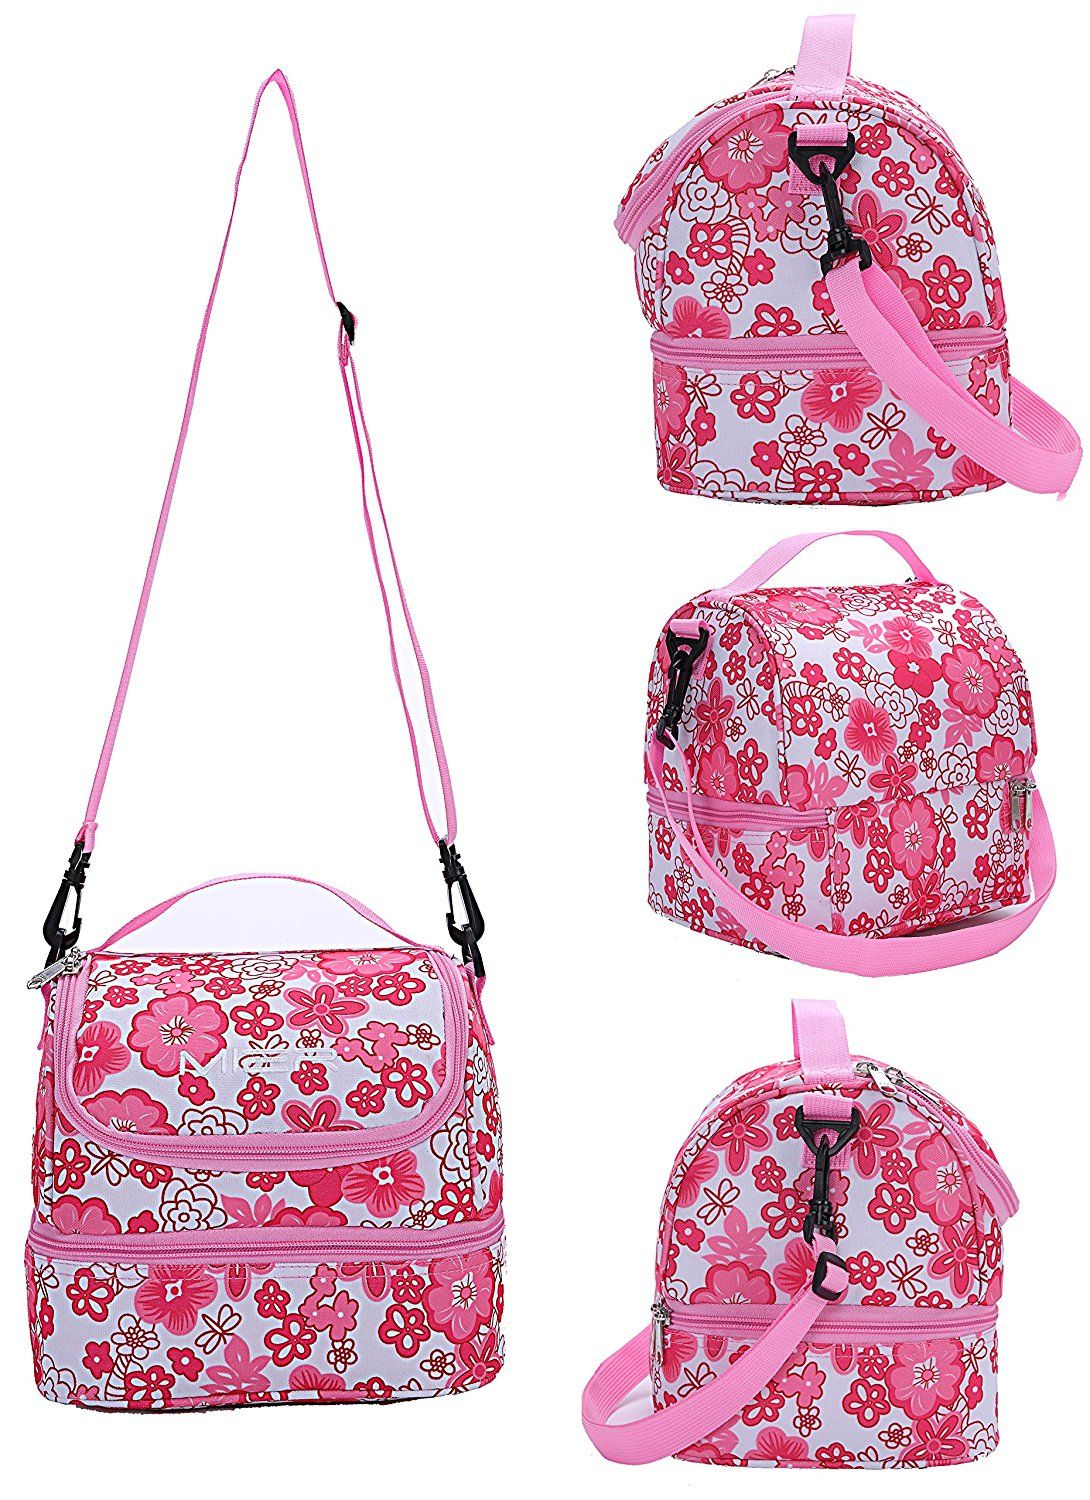 Mier Double Decker Insulated Lunch Box Pink Soft Cooler Bag Thermal Lunch Tote With Shoulder Strap Pink Star Http Bags Soft Cooler Bag Insulated Lunch Tote